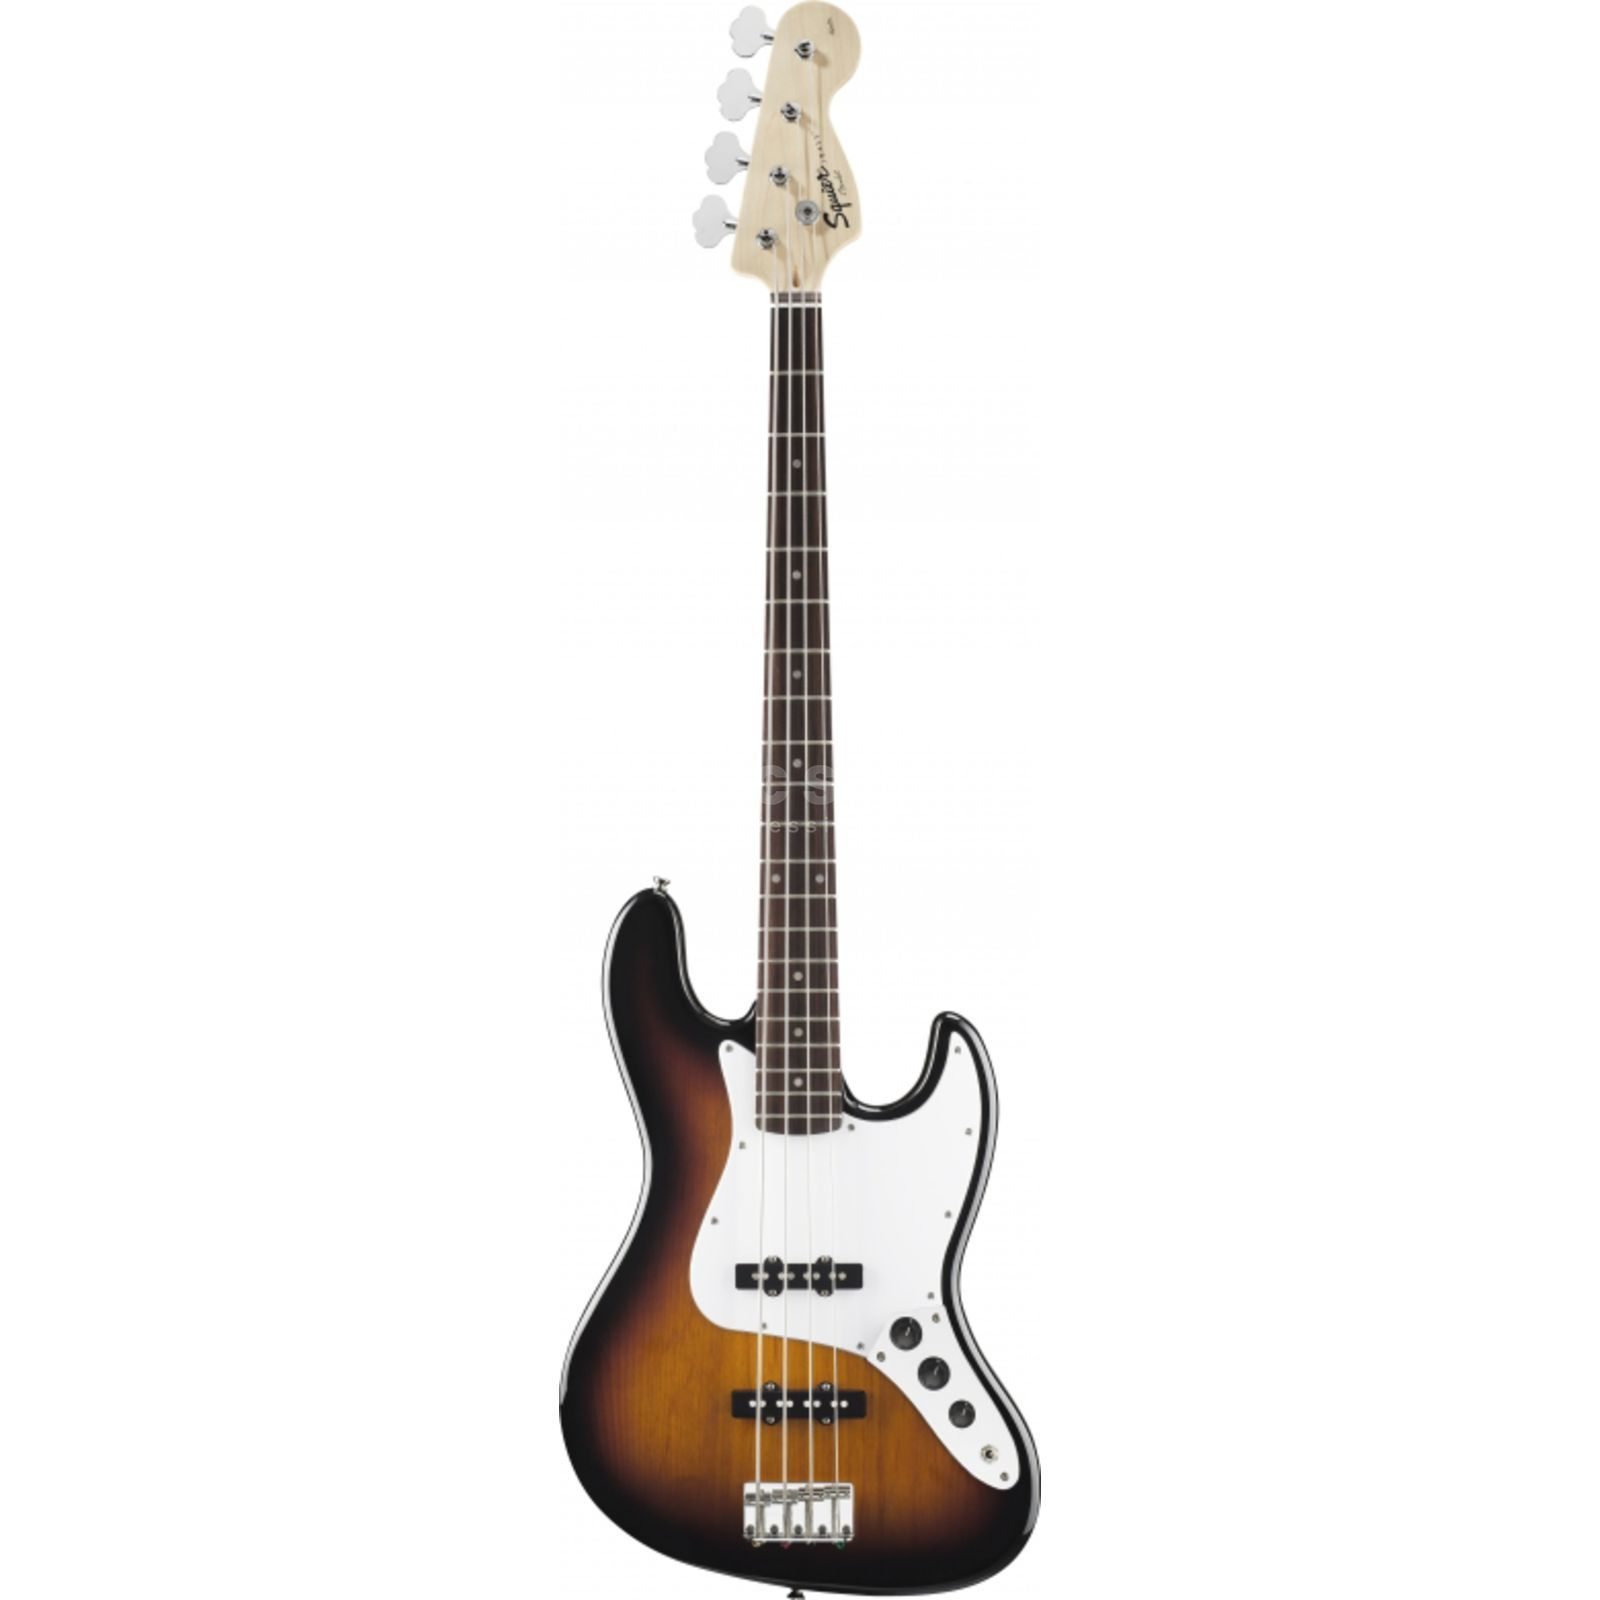 Fender Squier Squier Affinity J-Bass RW BSB Brown Sunburst Изображение товара